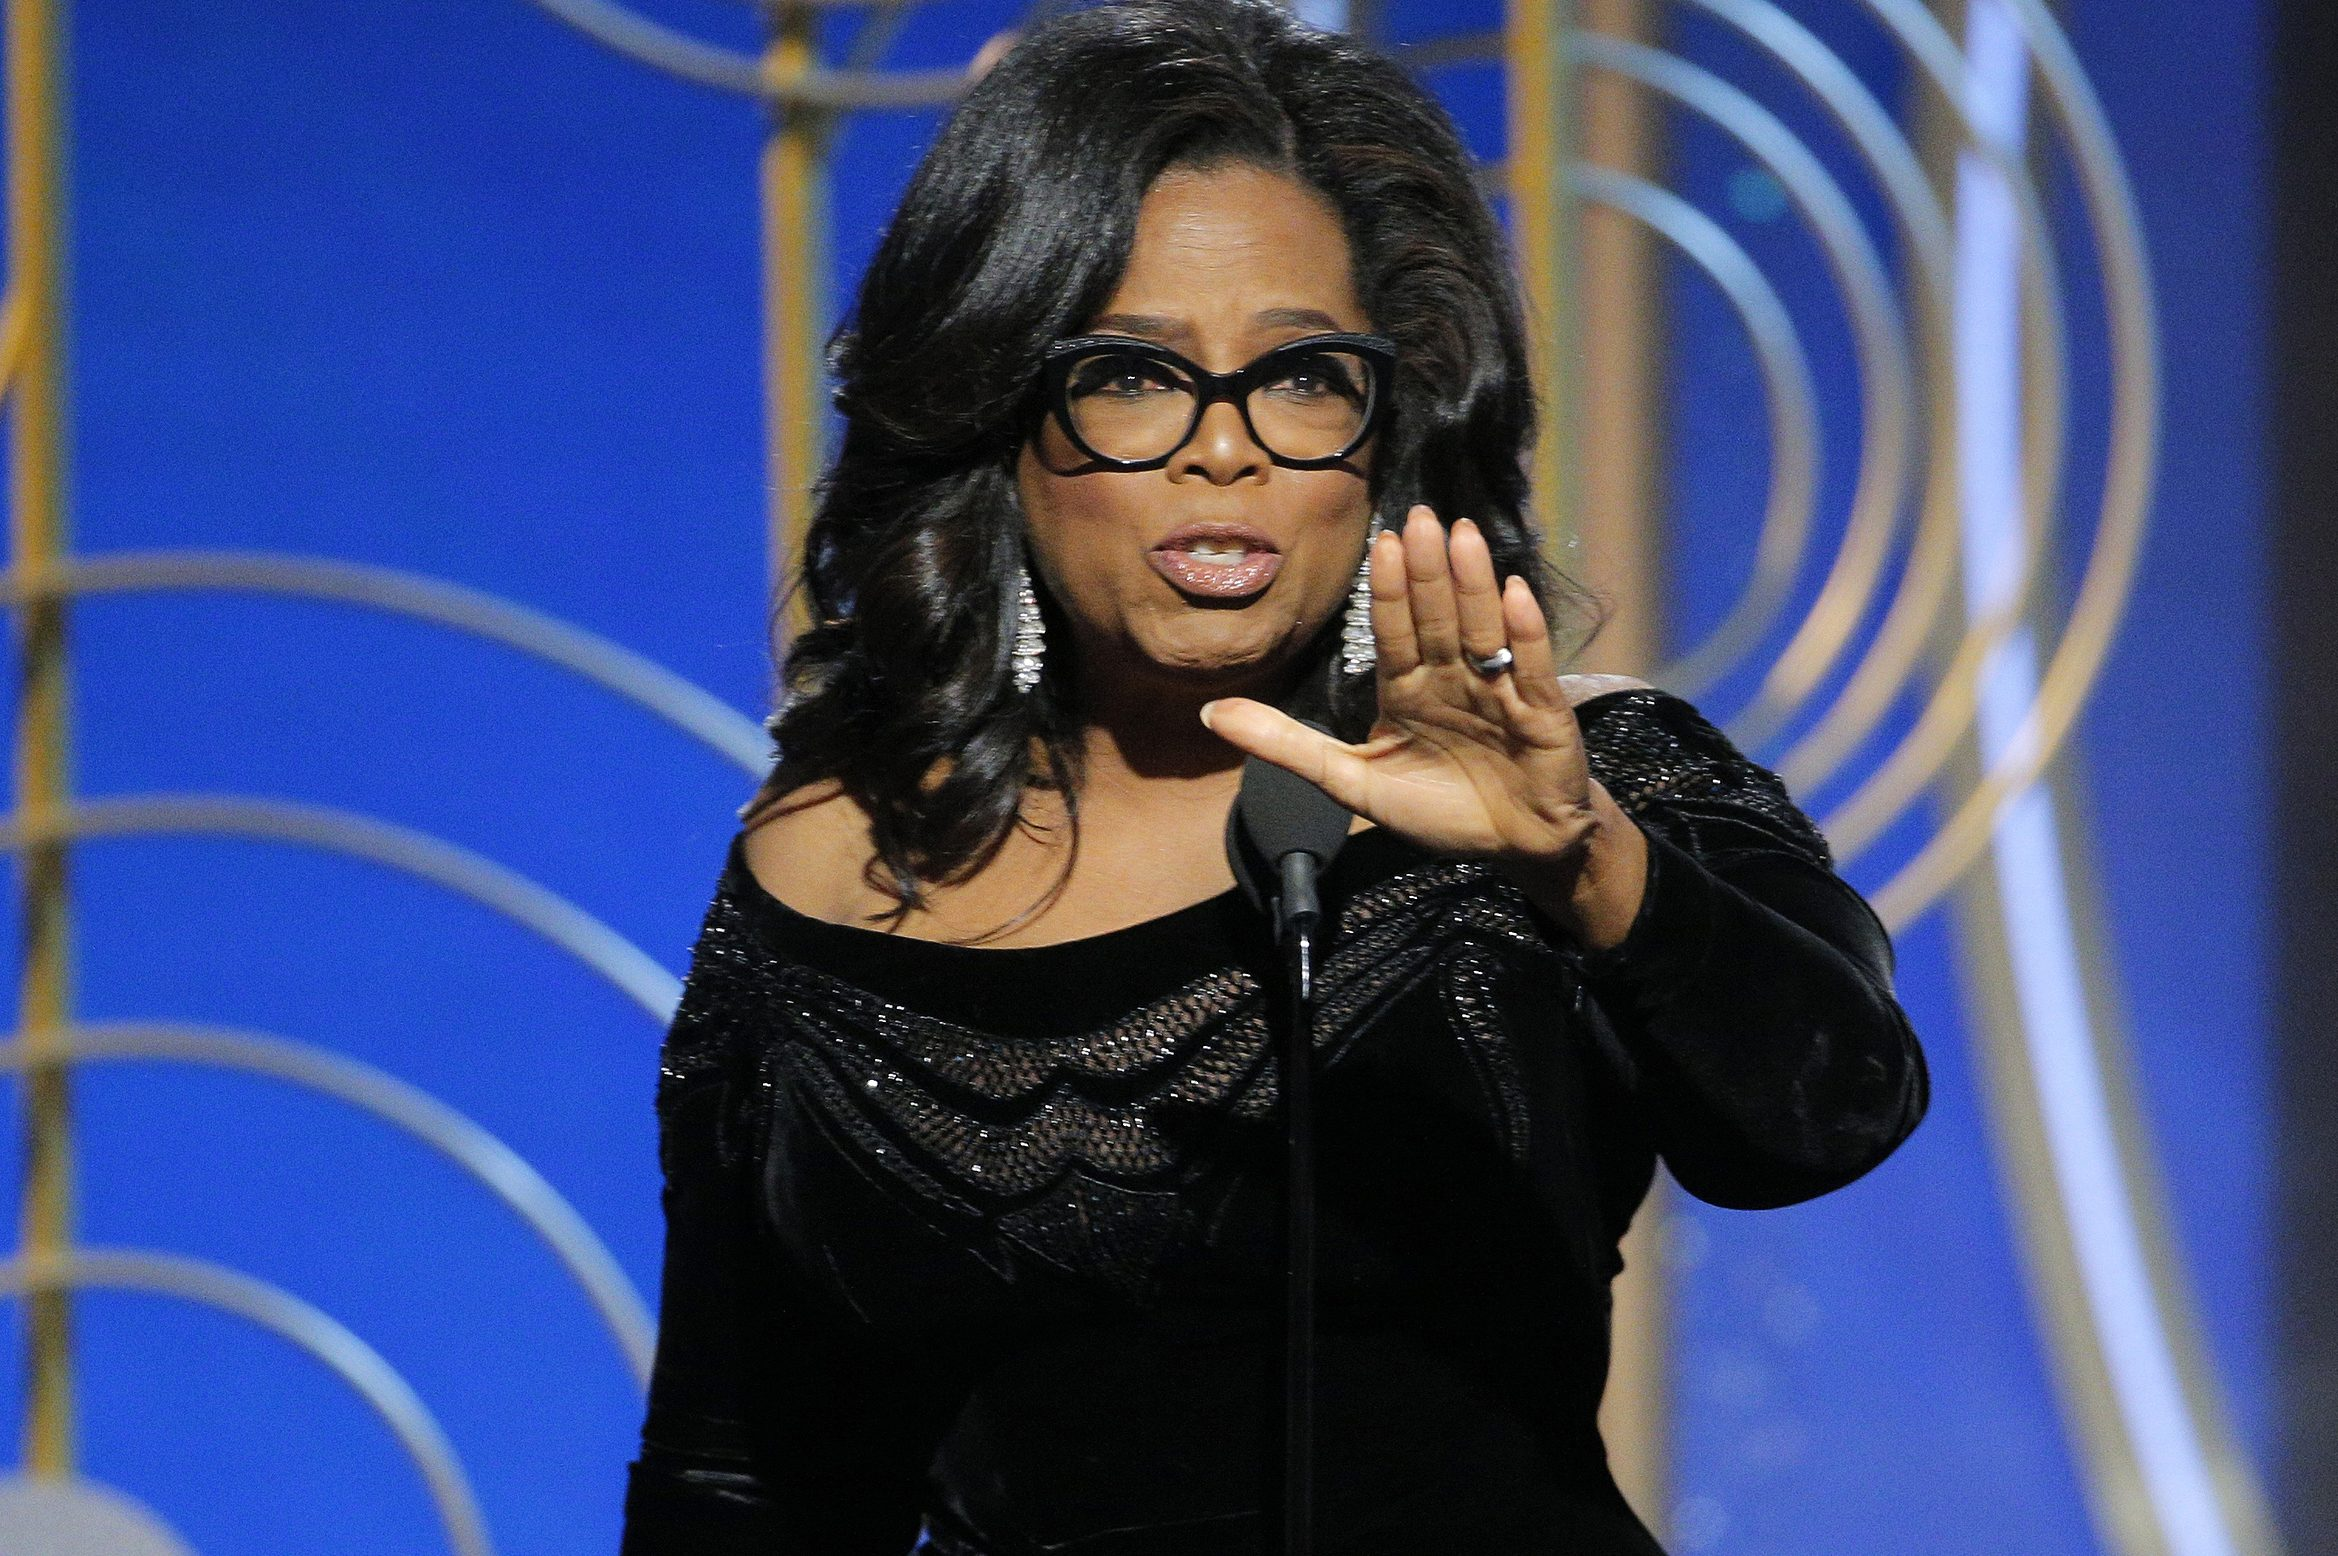 Oprah Winfrey accepting the Cecil B. DeMille Award at the 75th Annual Golden Globe Awards in Beverly Hills on Sunday.